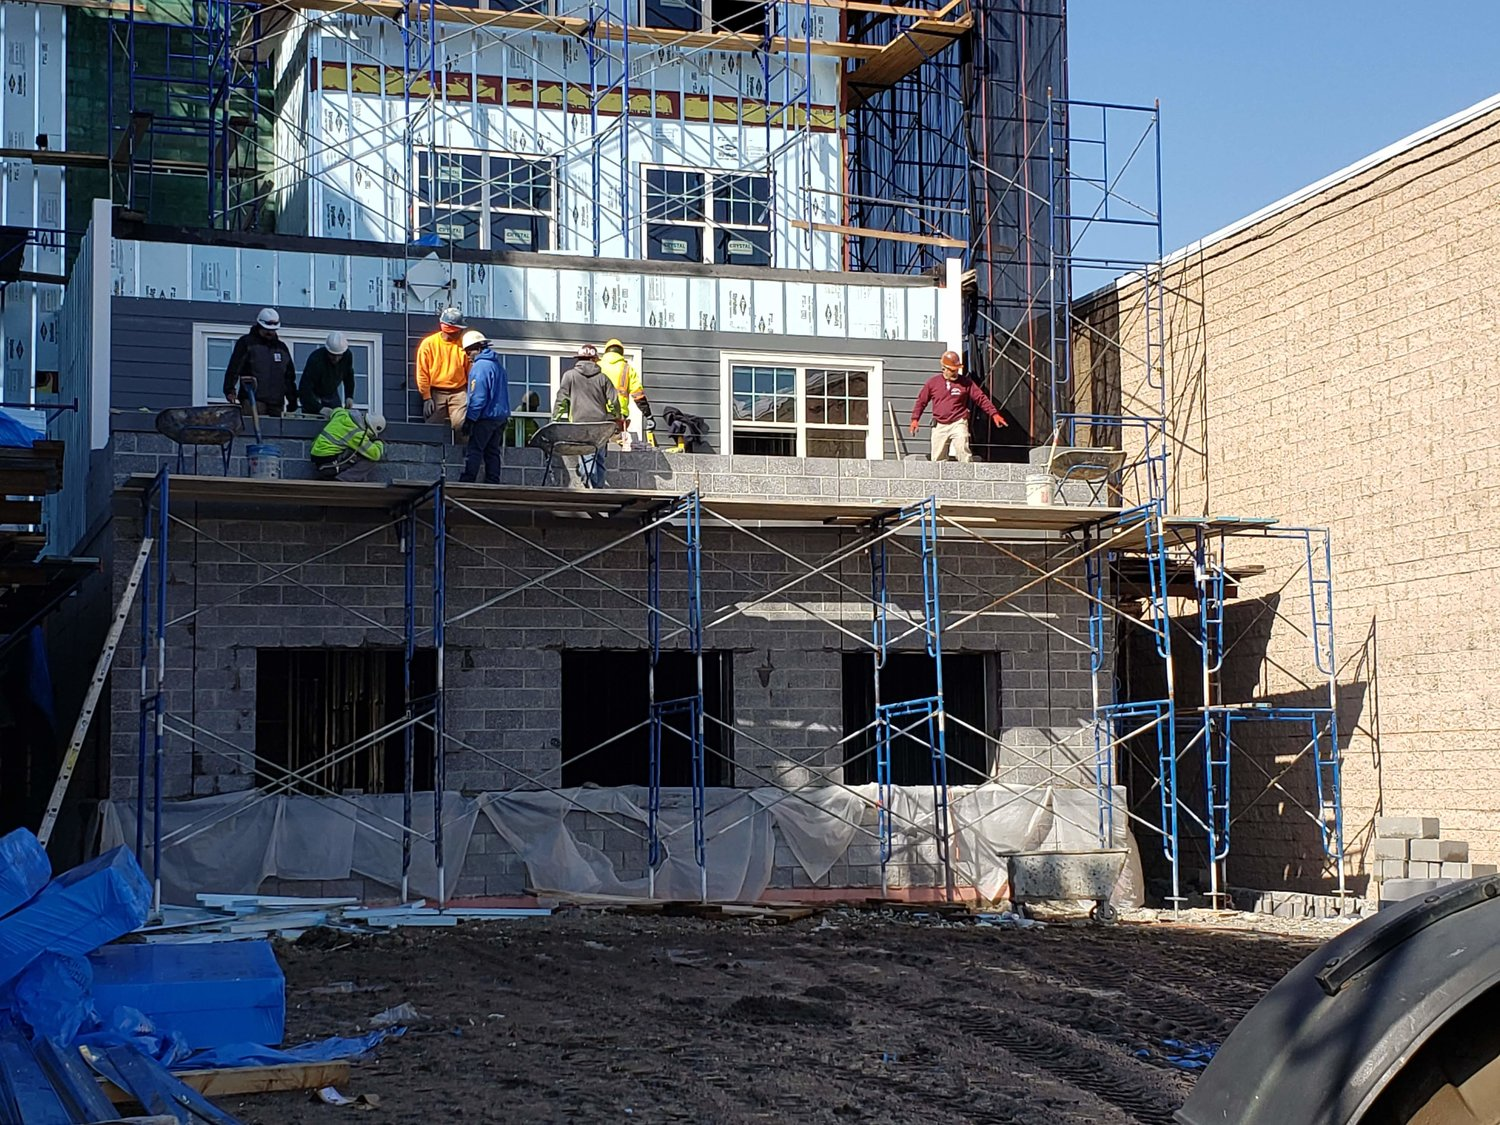 Construction workers were seen working on the new apartment building's exterior.